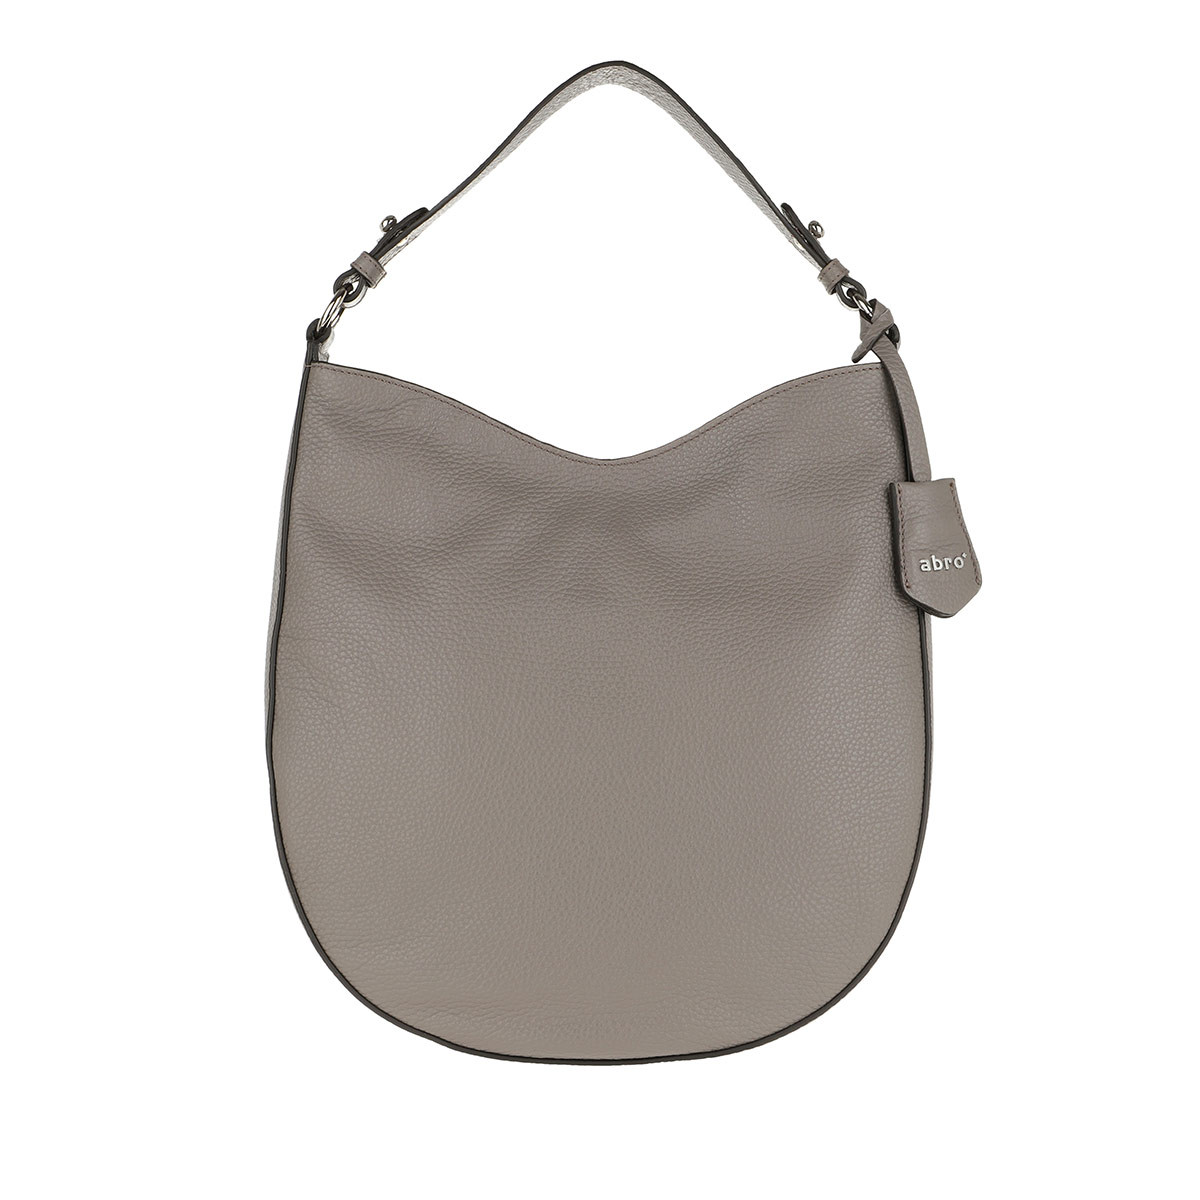 Abro Hobo Bag - Beutel Ay Zinc - in grau - für Damen